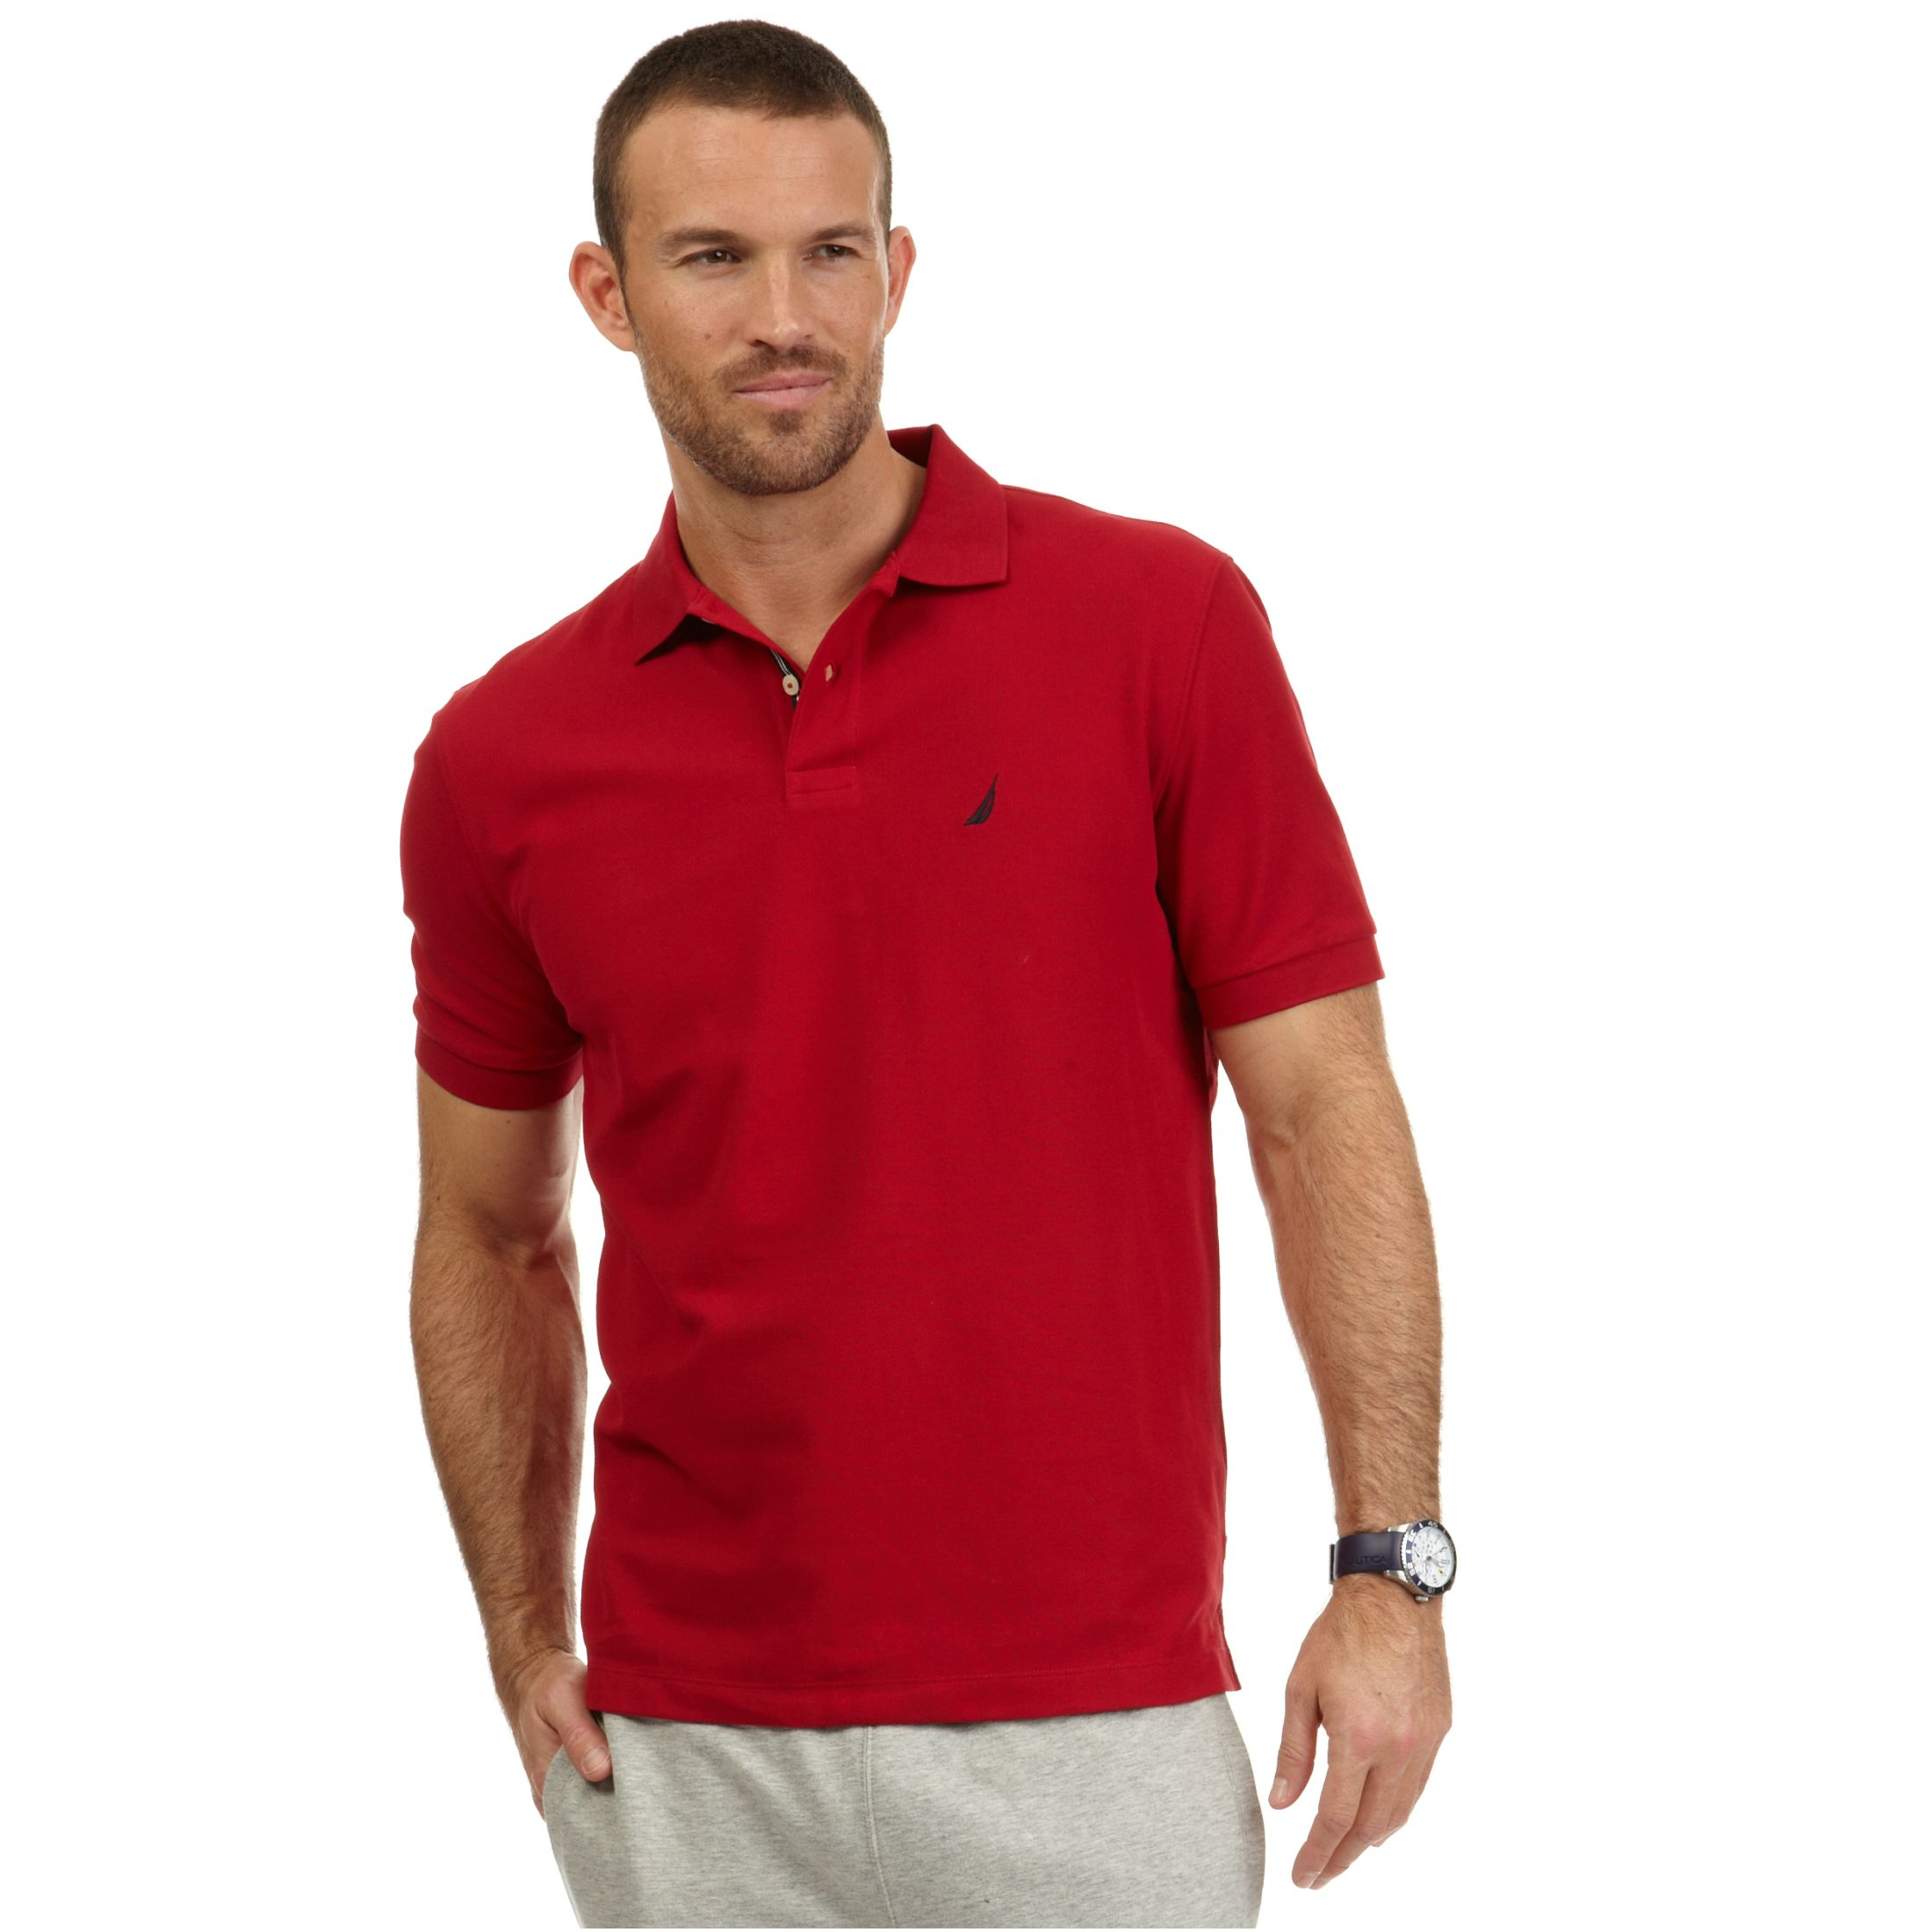 Shop Dillard's selection of men's casual polo shirts from your favorite brands.